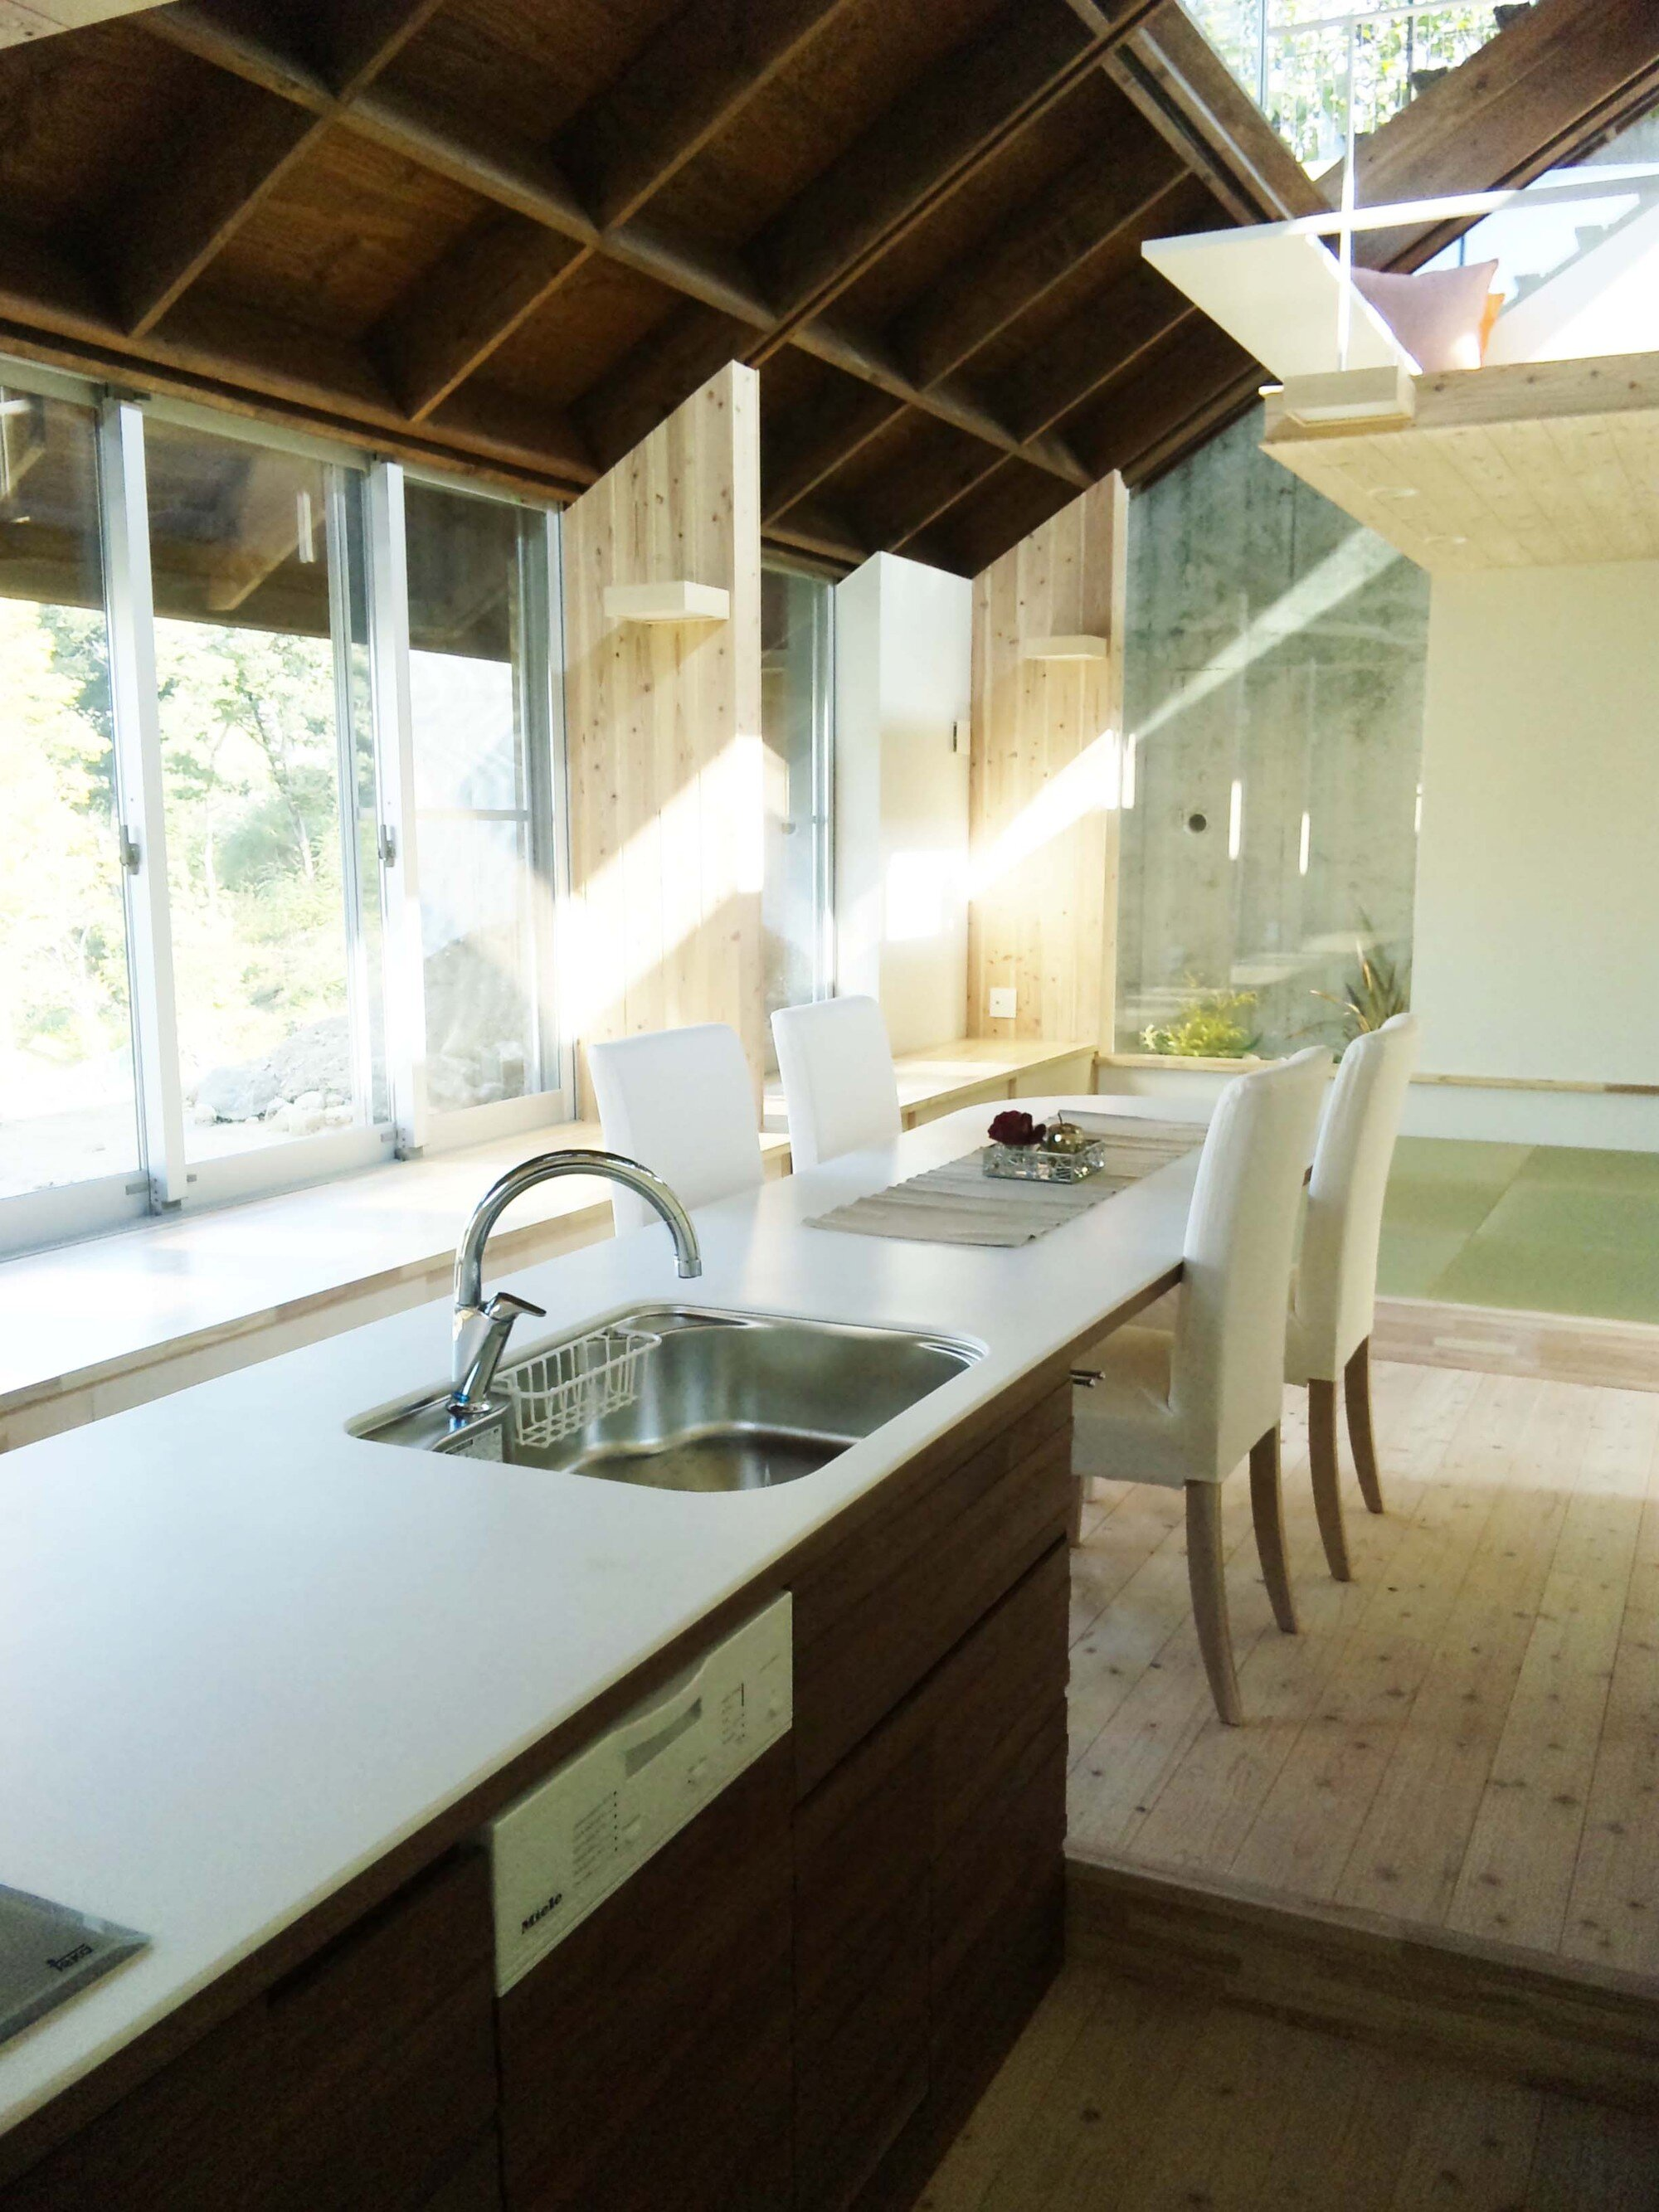 North Garden House - Small House - y+M - Tokushima Japan - Dining Area - Humble Homes